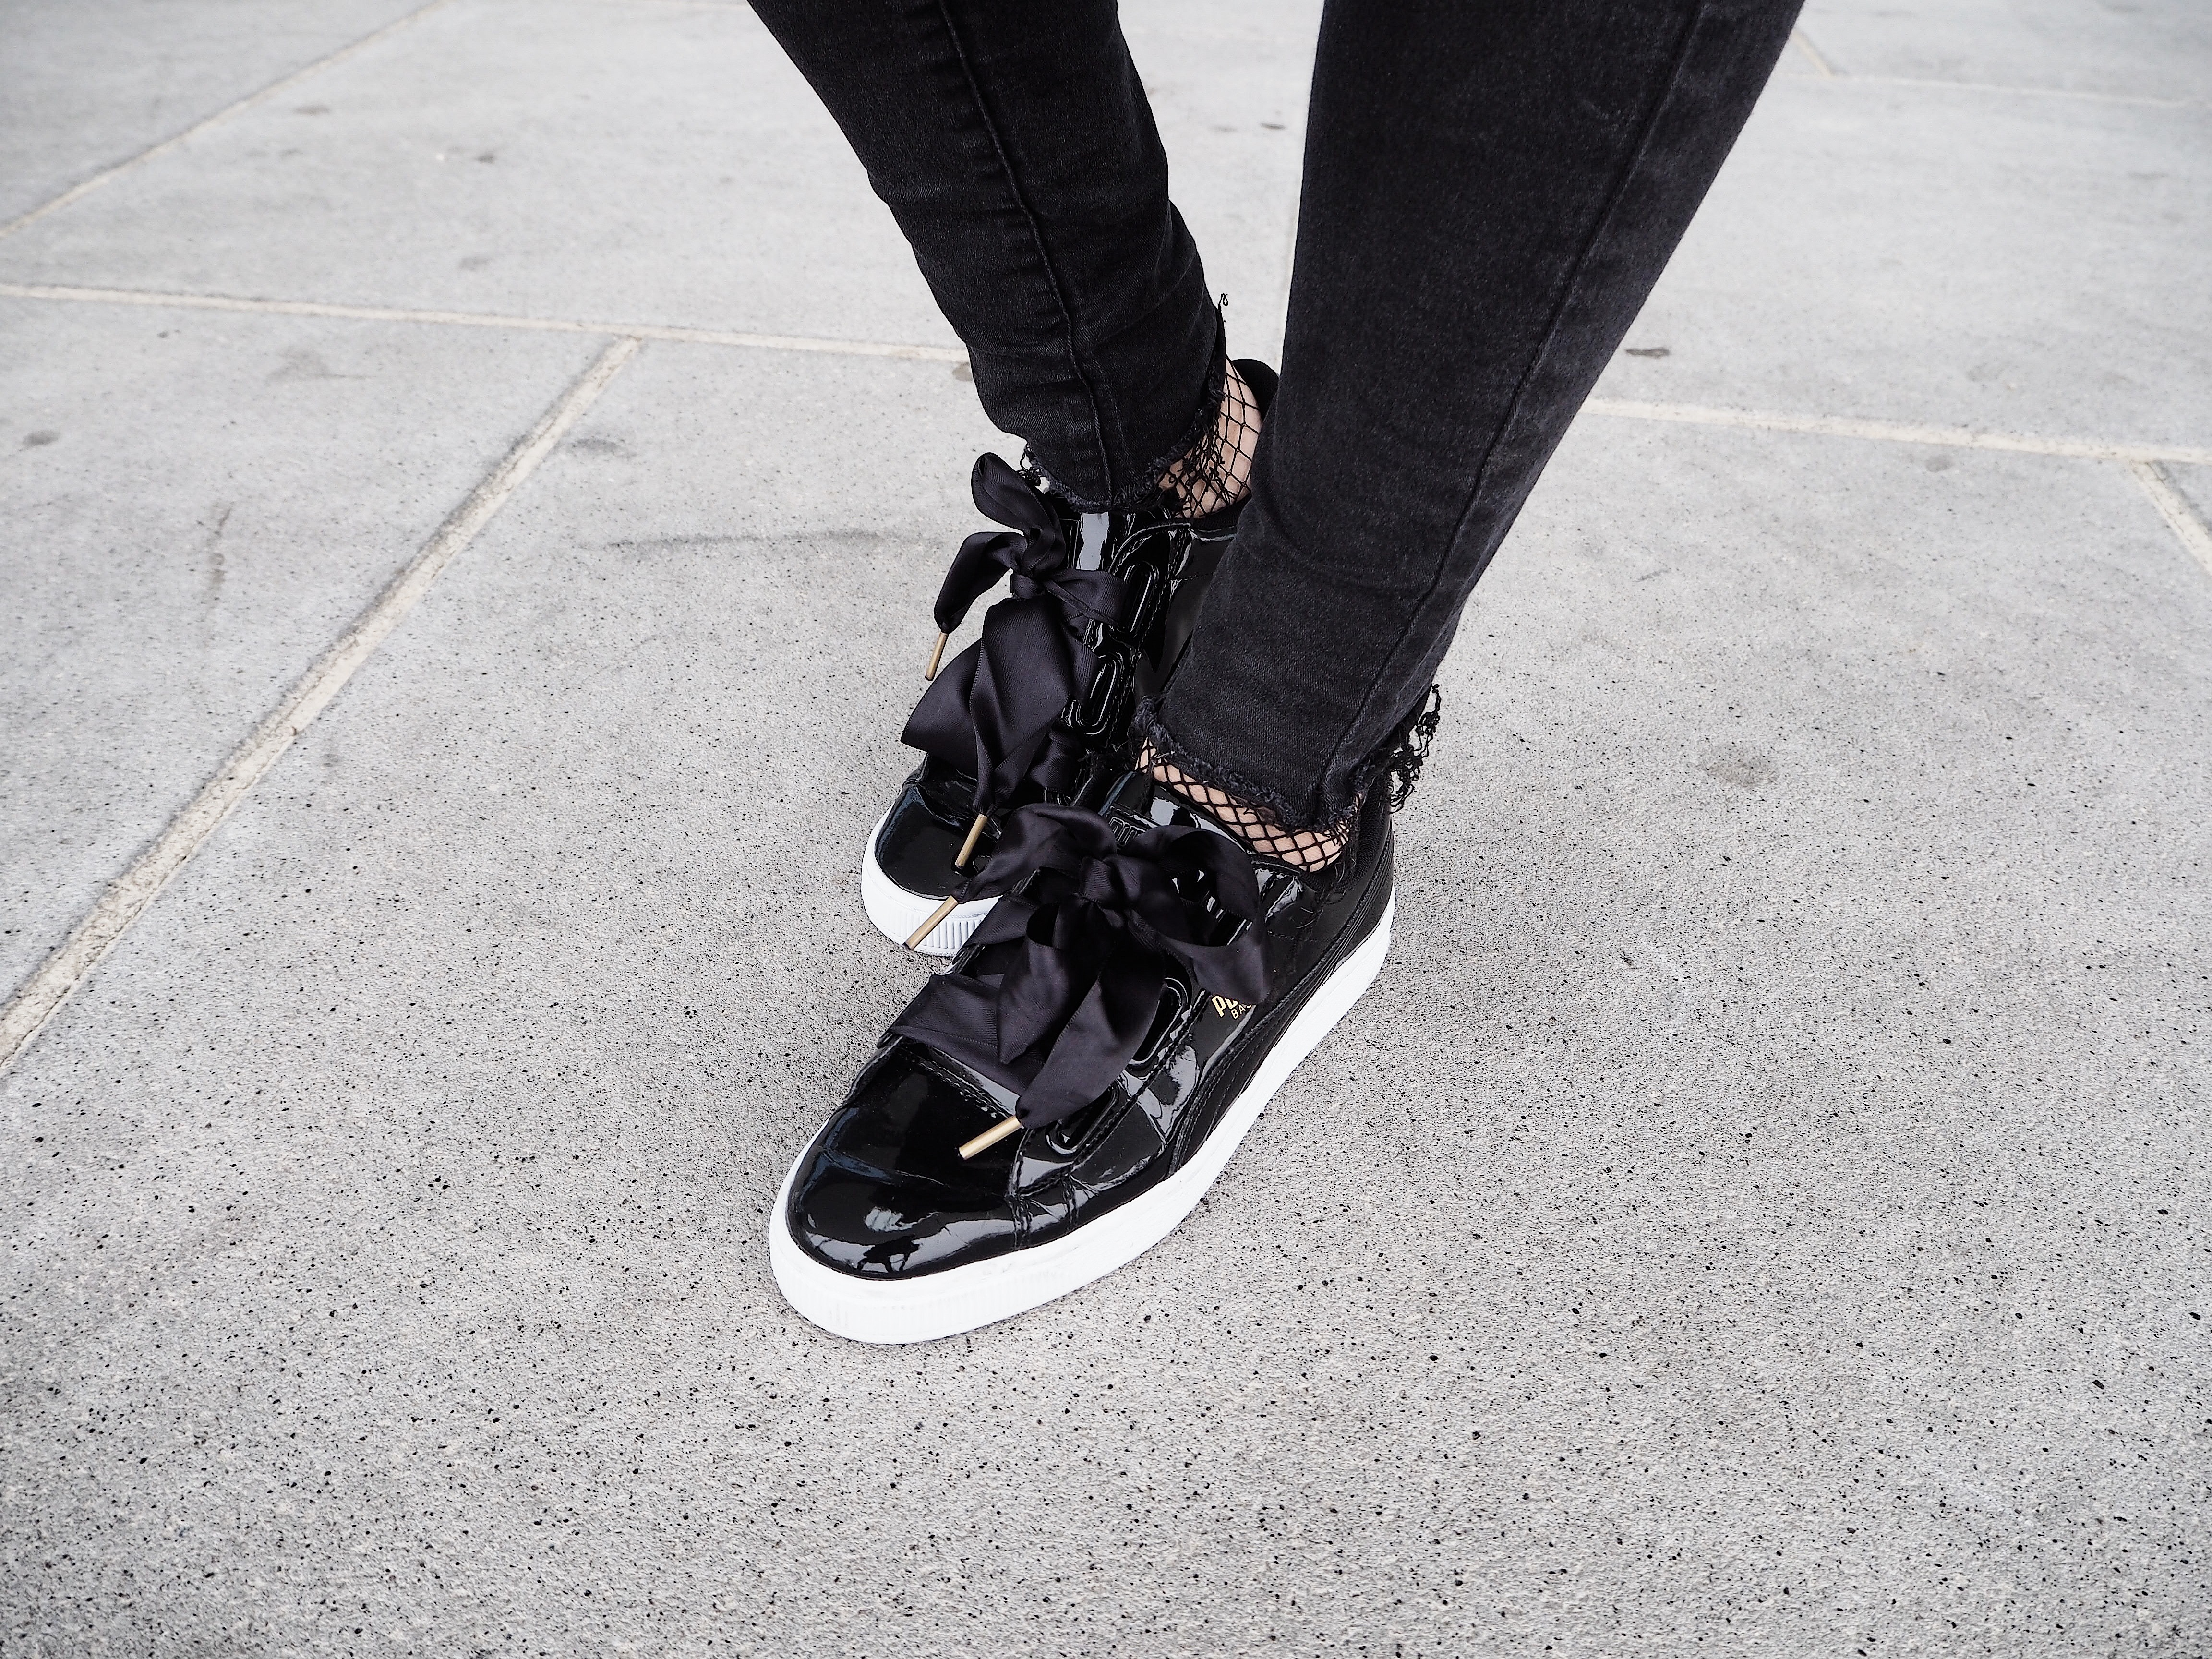 OUTFIT: Puma Basket Heart Sneakers |